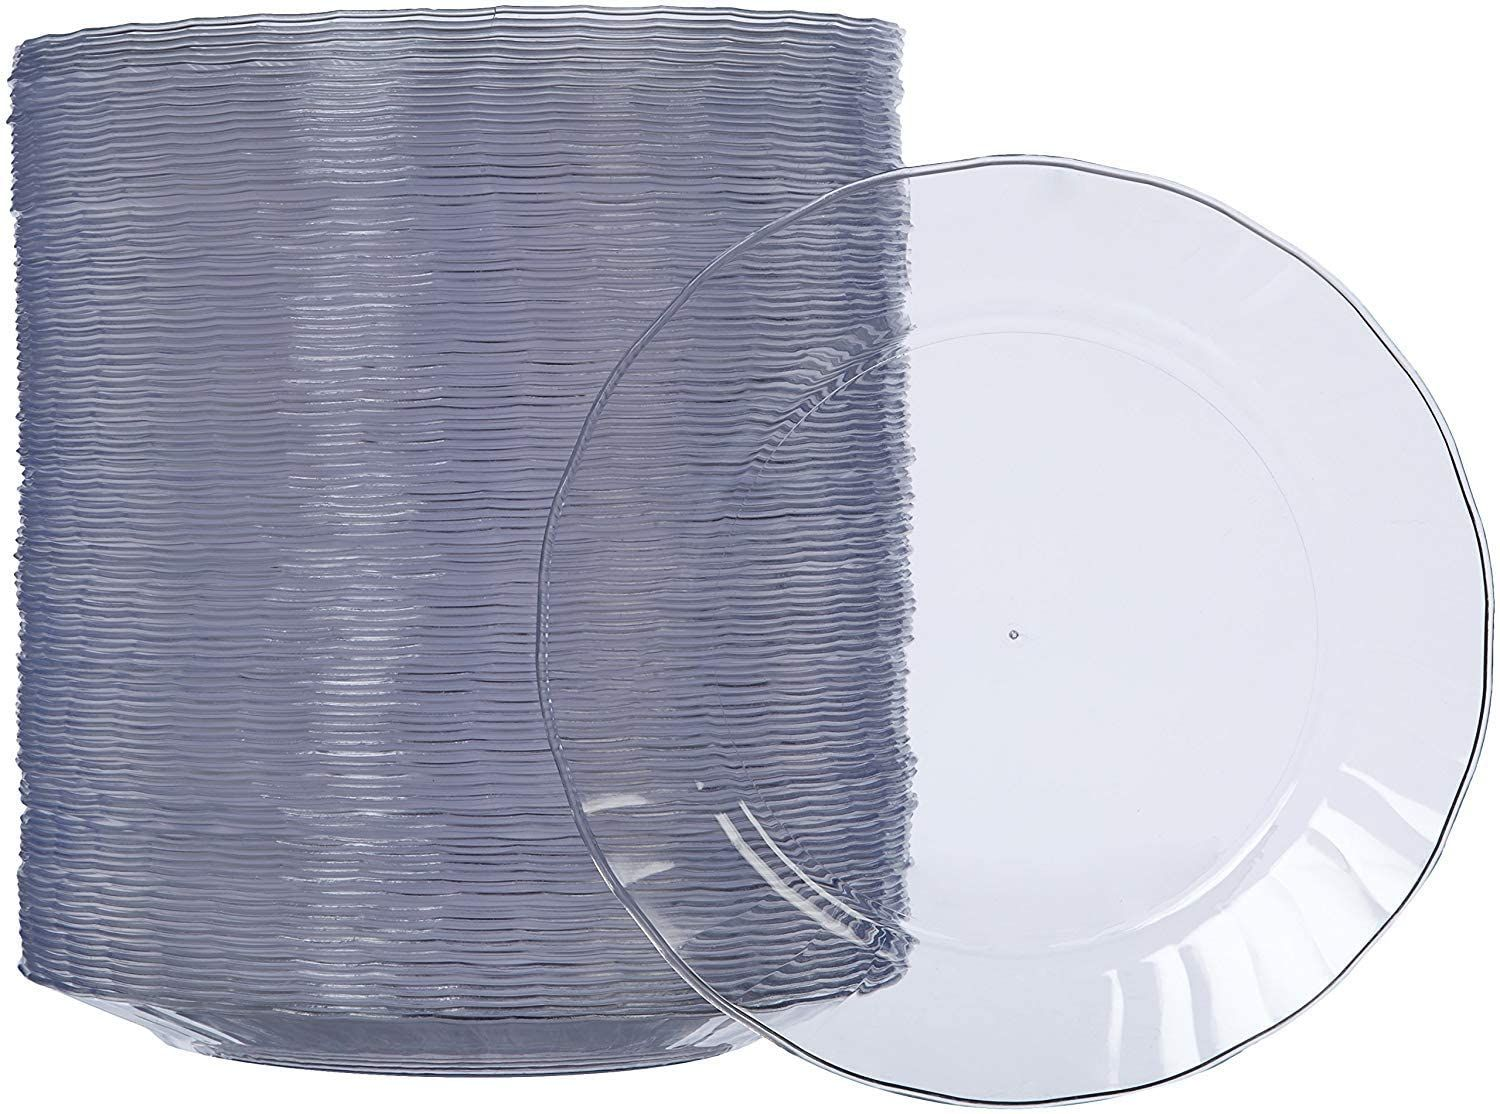 Disposable Clear Plastic Plates 100 Pack 7 5 Inch In 2020 Clear Plastic Plates Disposable Plastic Plates Disposable Plates